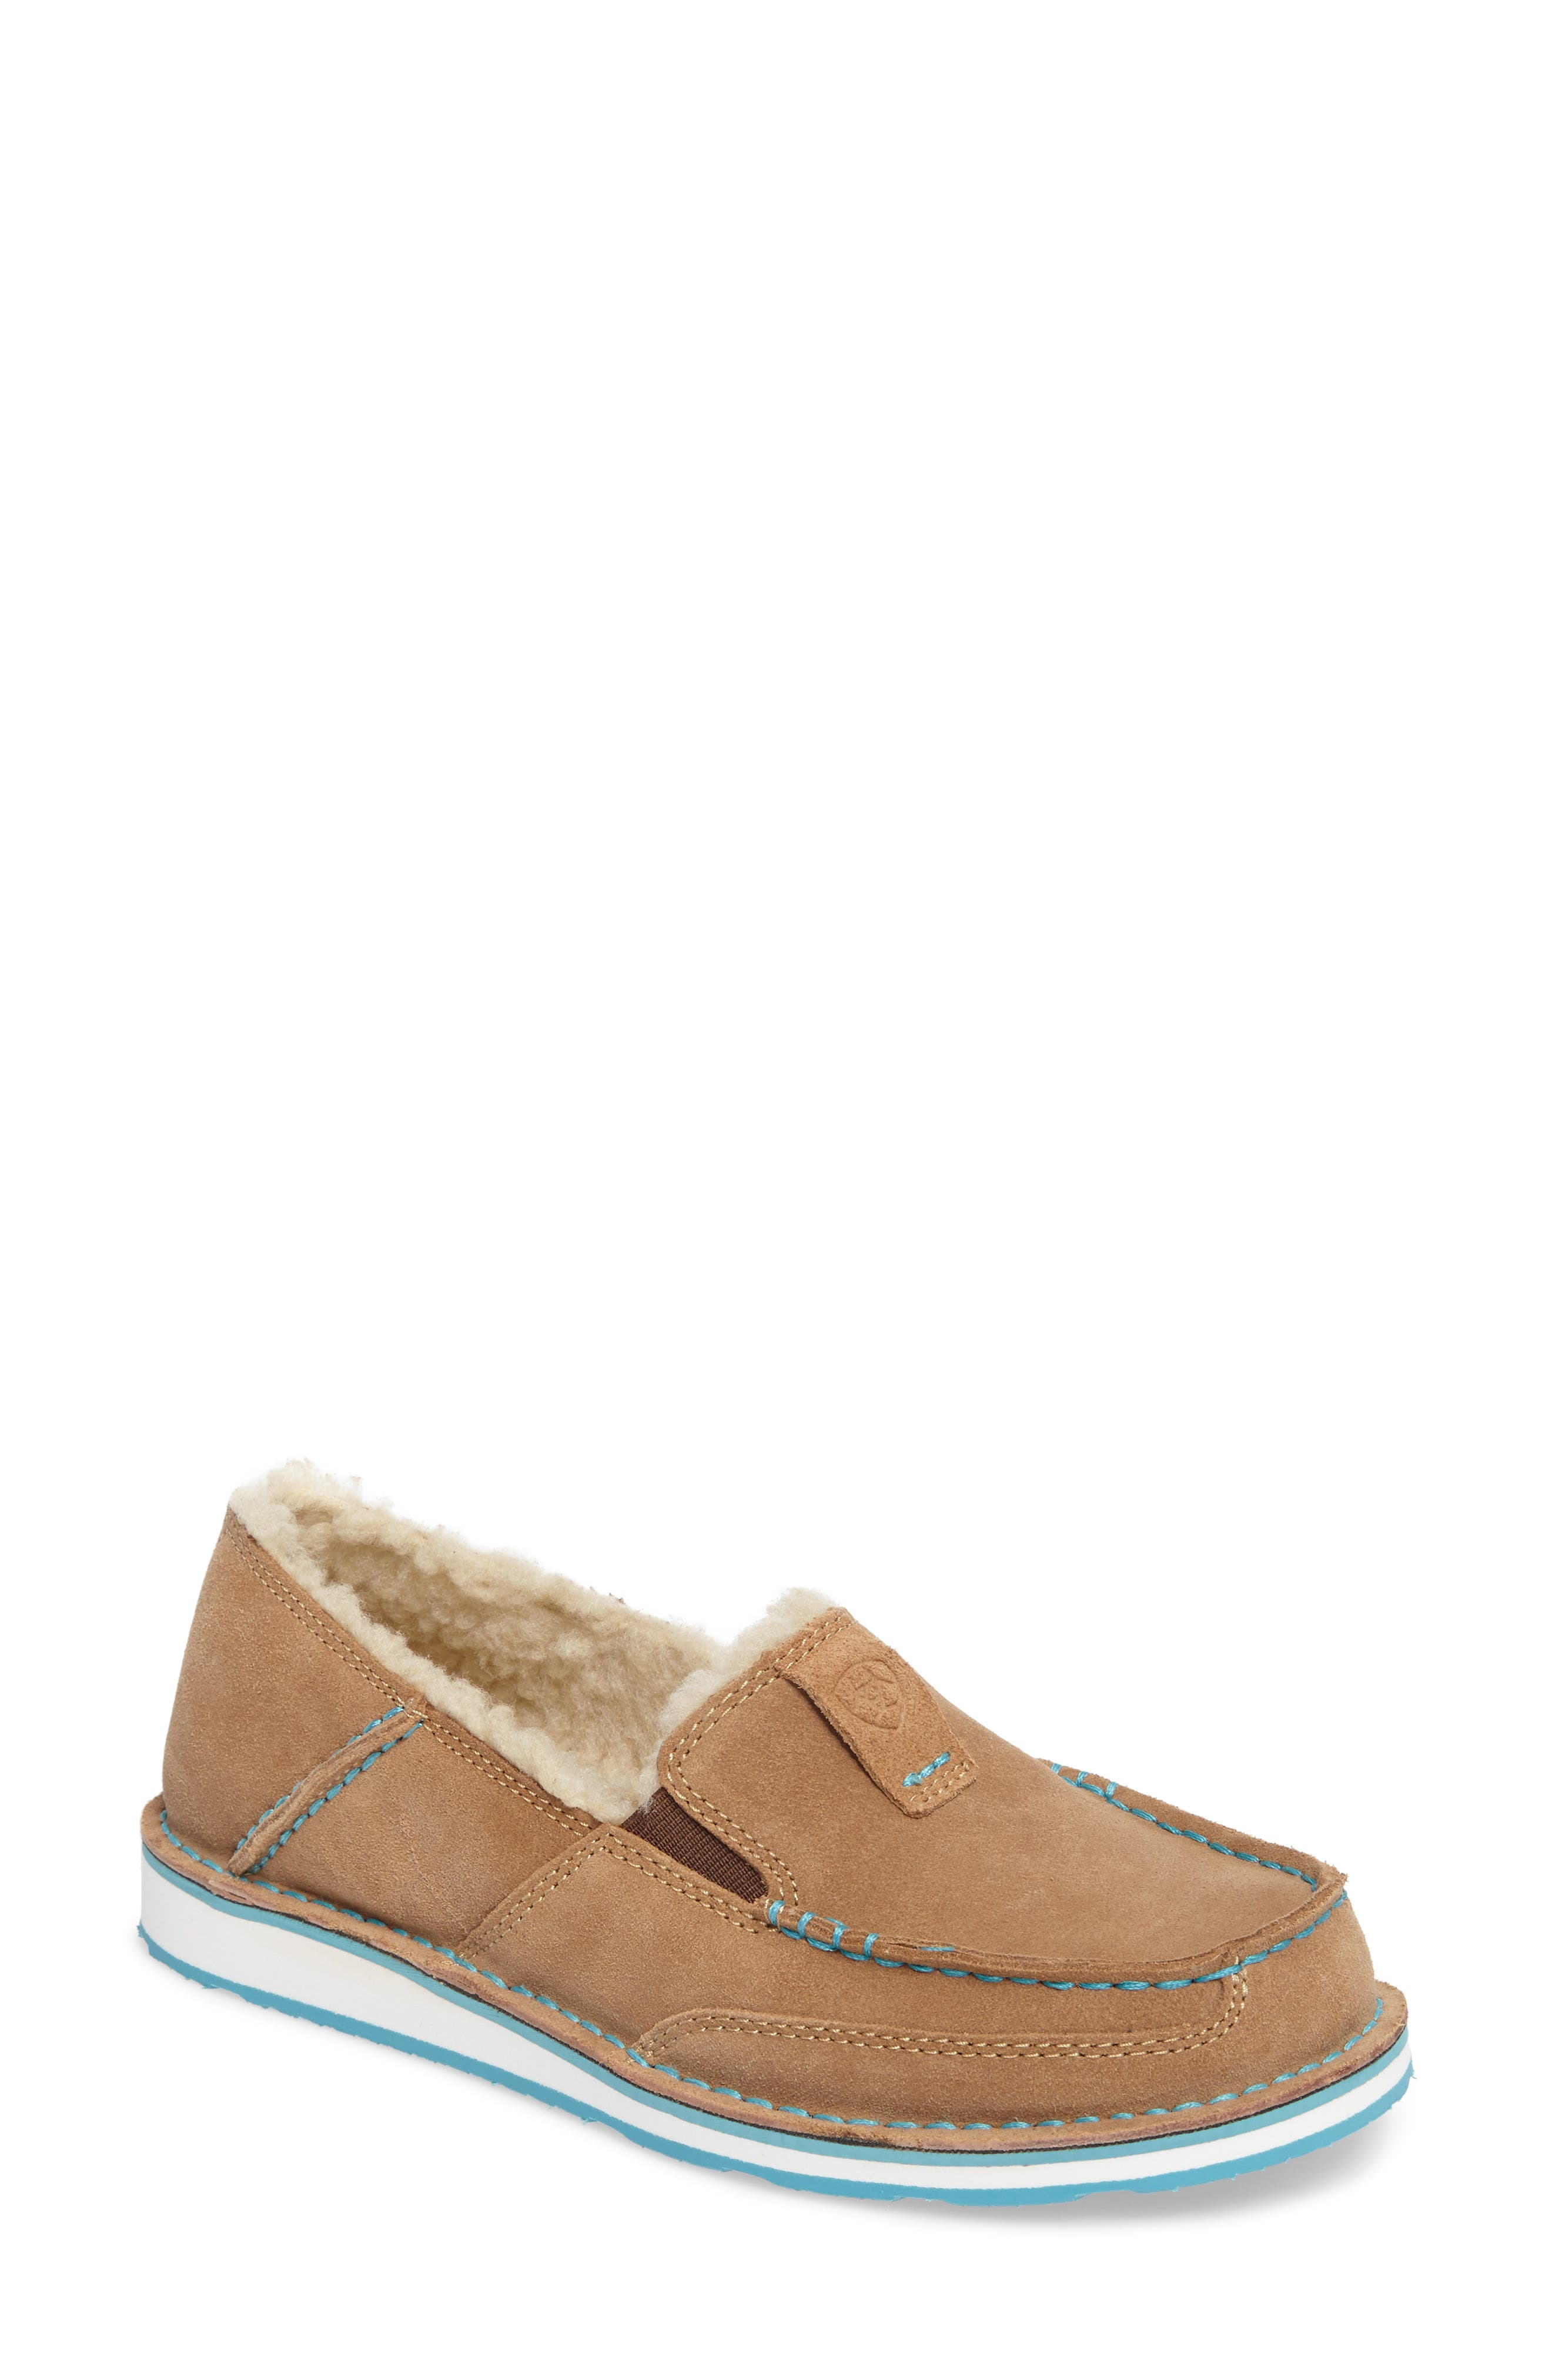 CRUISER SLIP-ON LOAFER WITH FAUX SHEARLING LINING